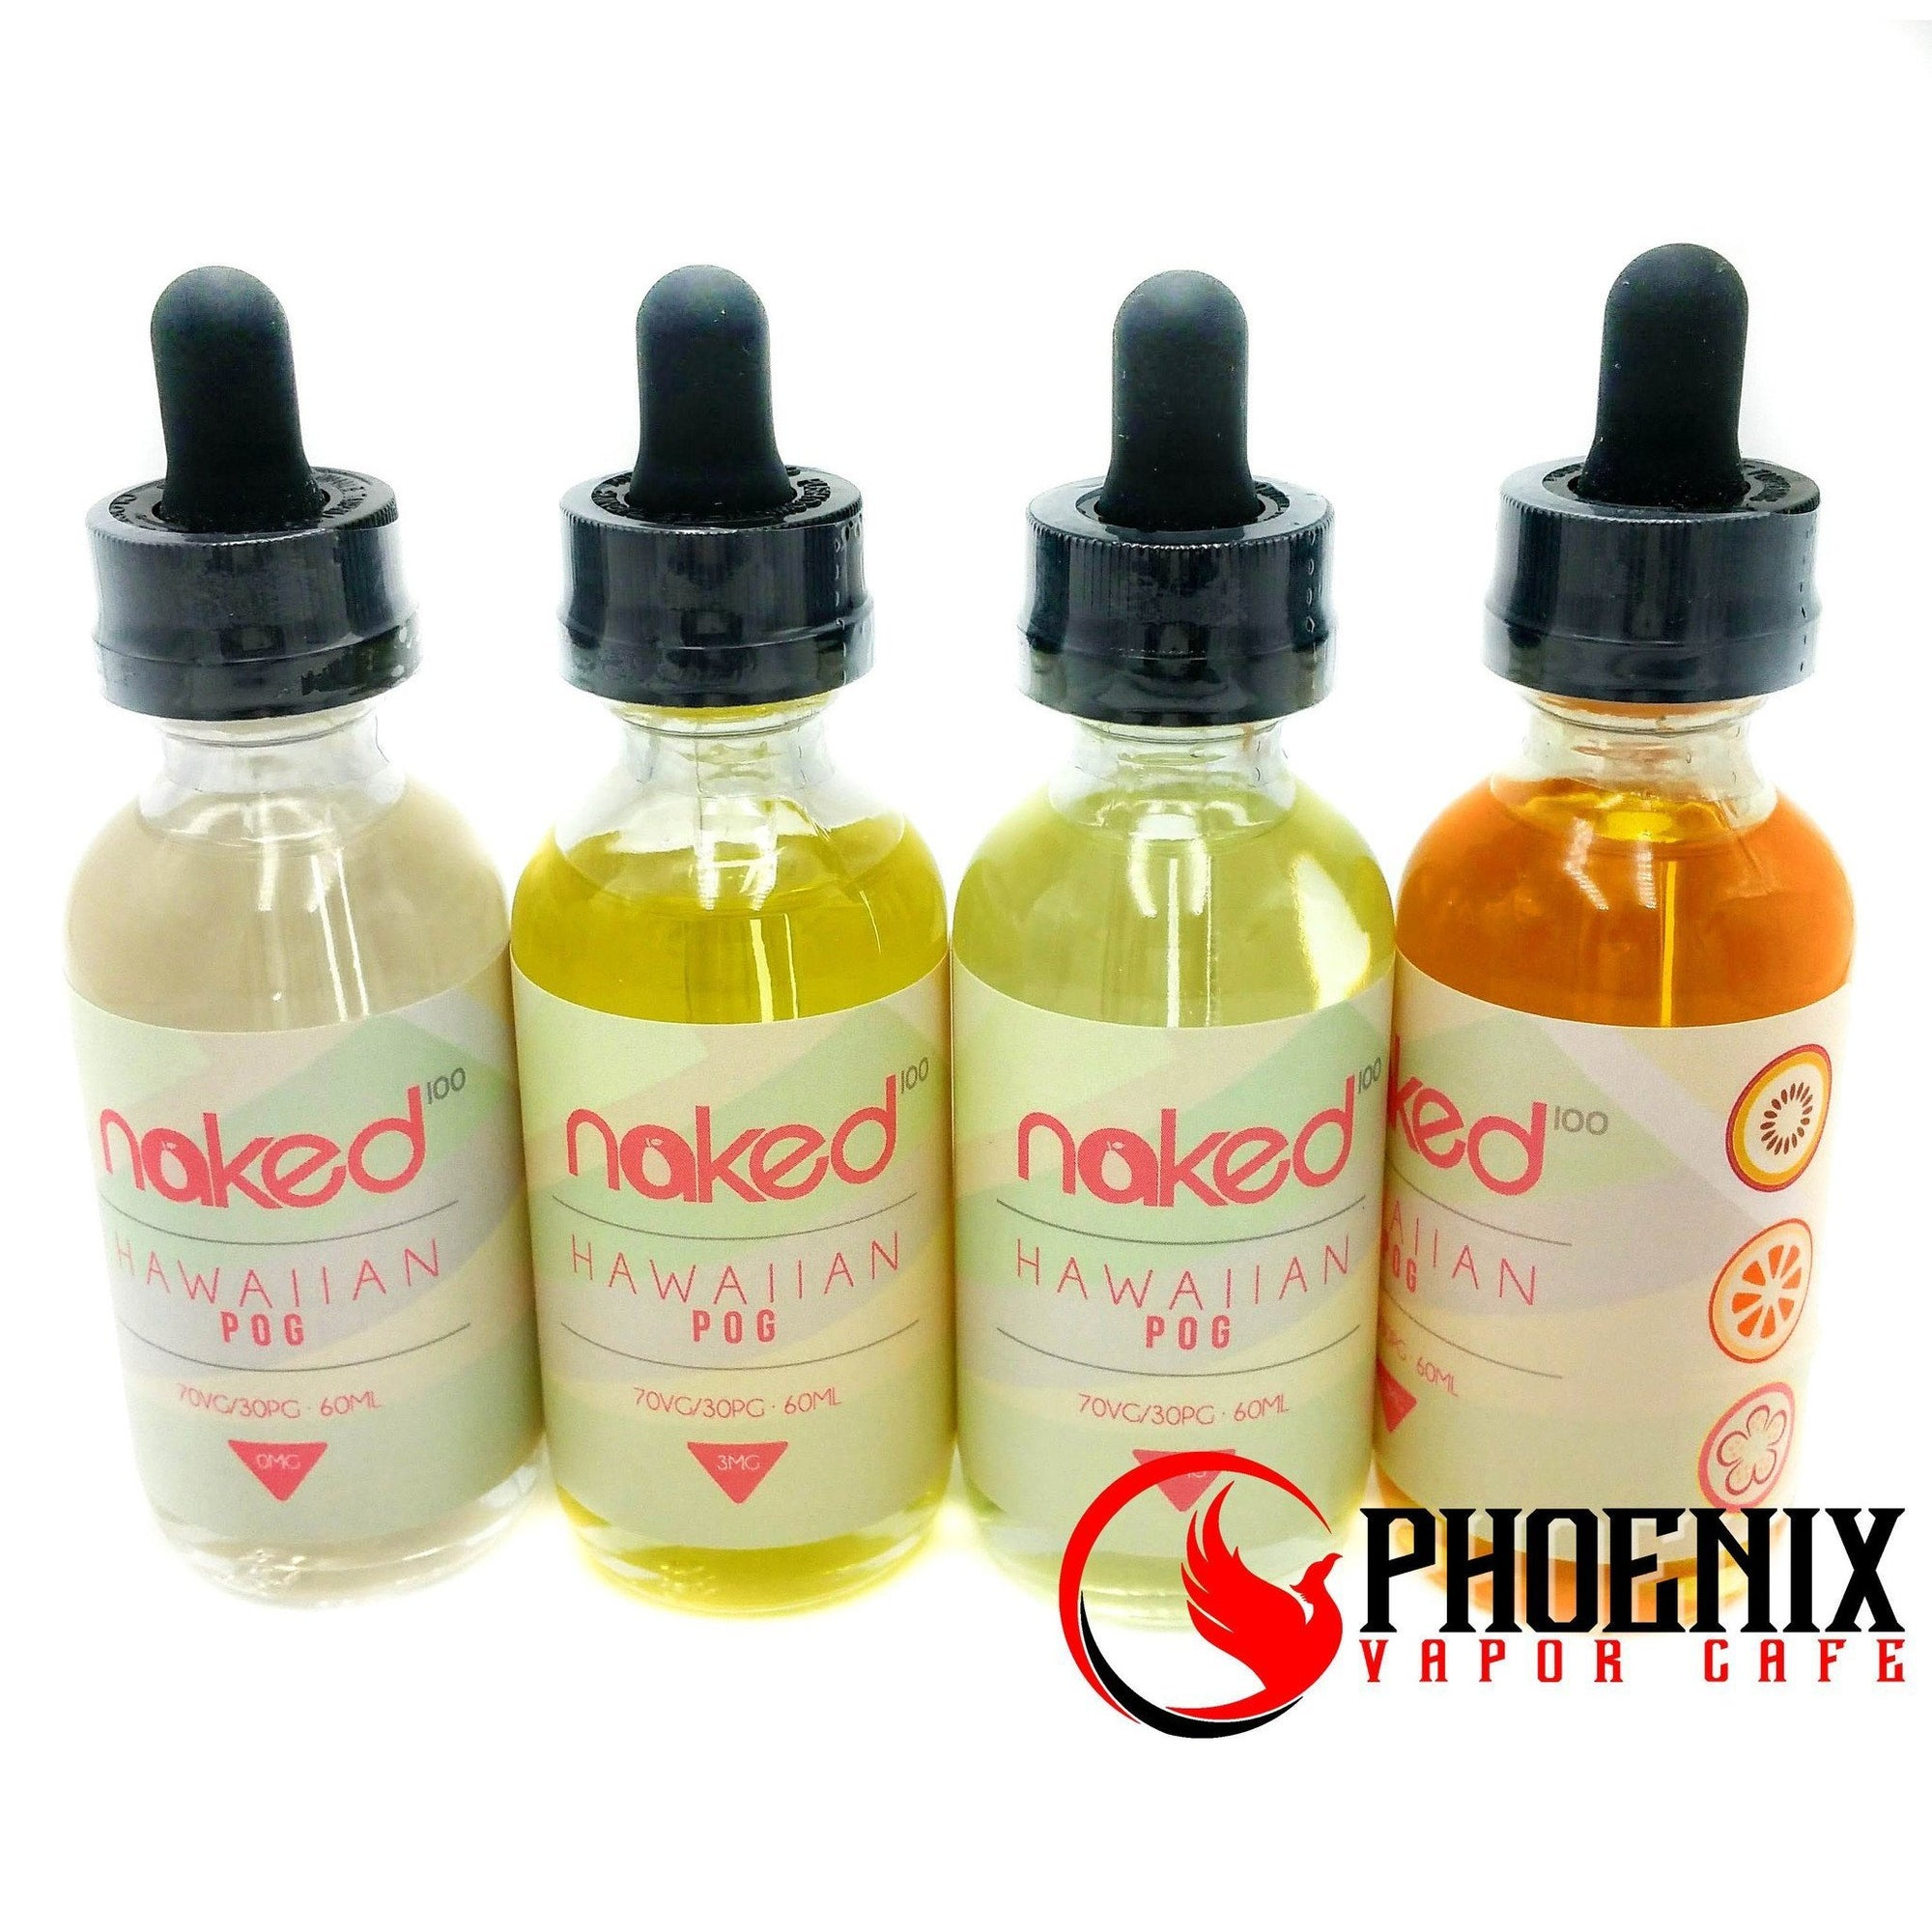 Naked E-Liquid 60 ml / 0 mg Naked Hawaiian POG